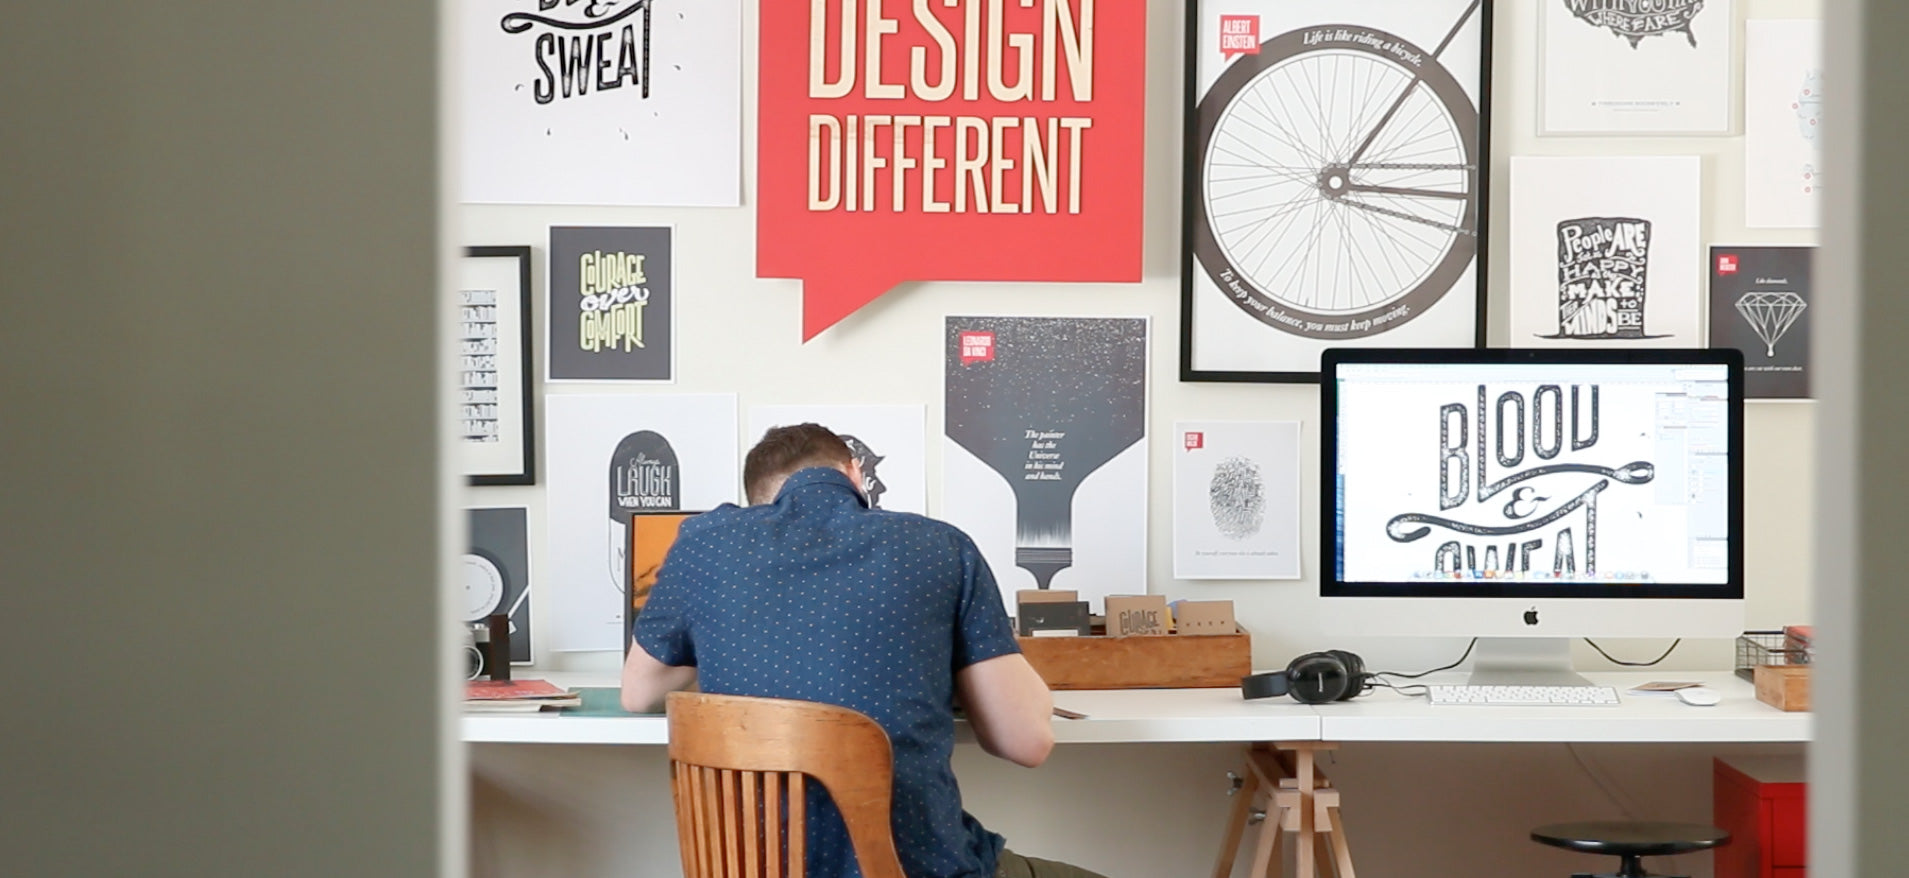 design different studio